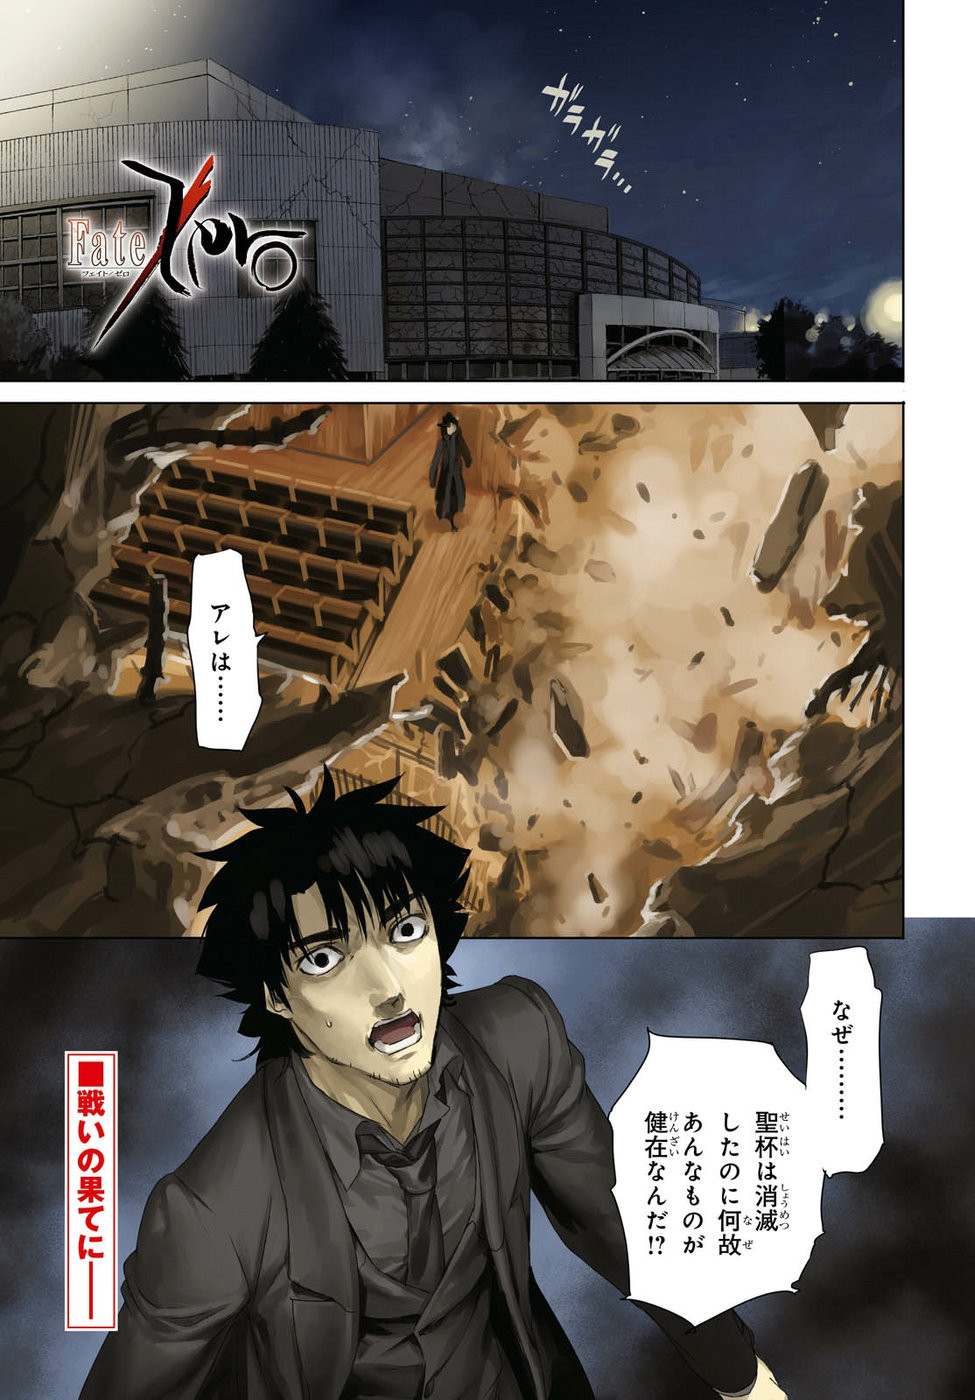 Fate_Zero Chapter 69 Page 1